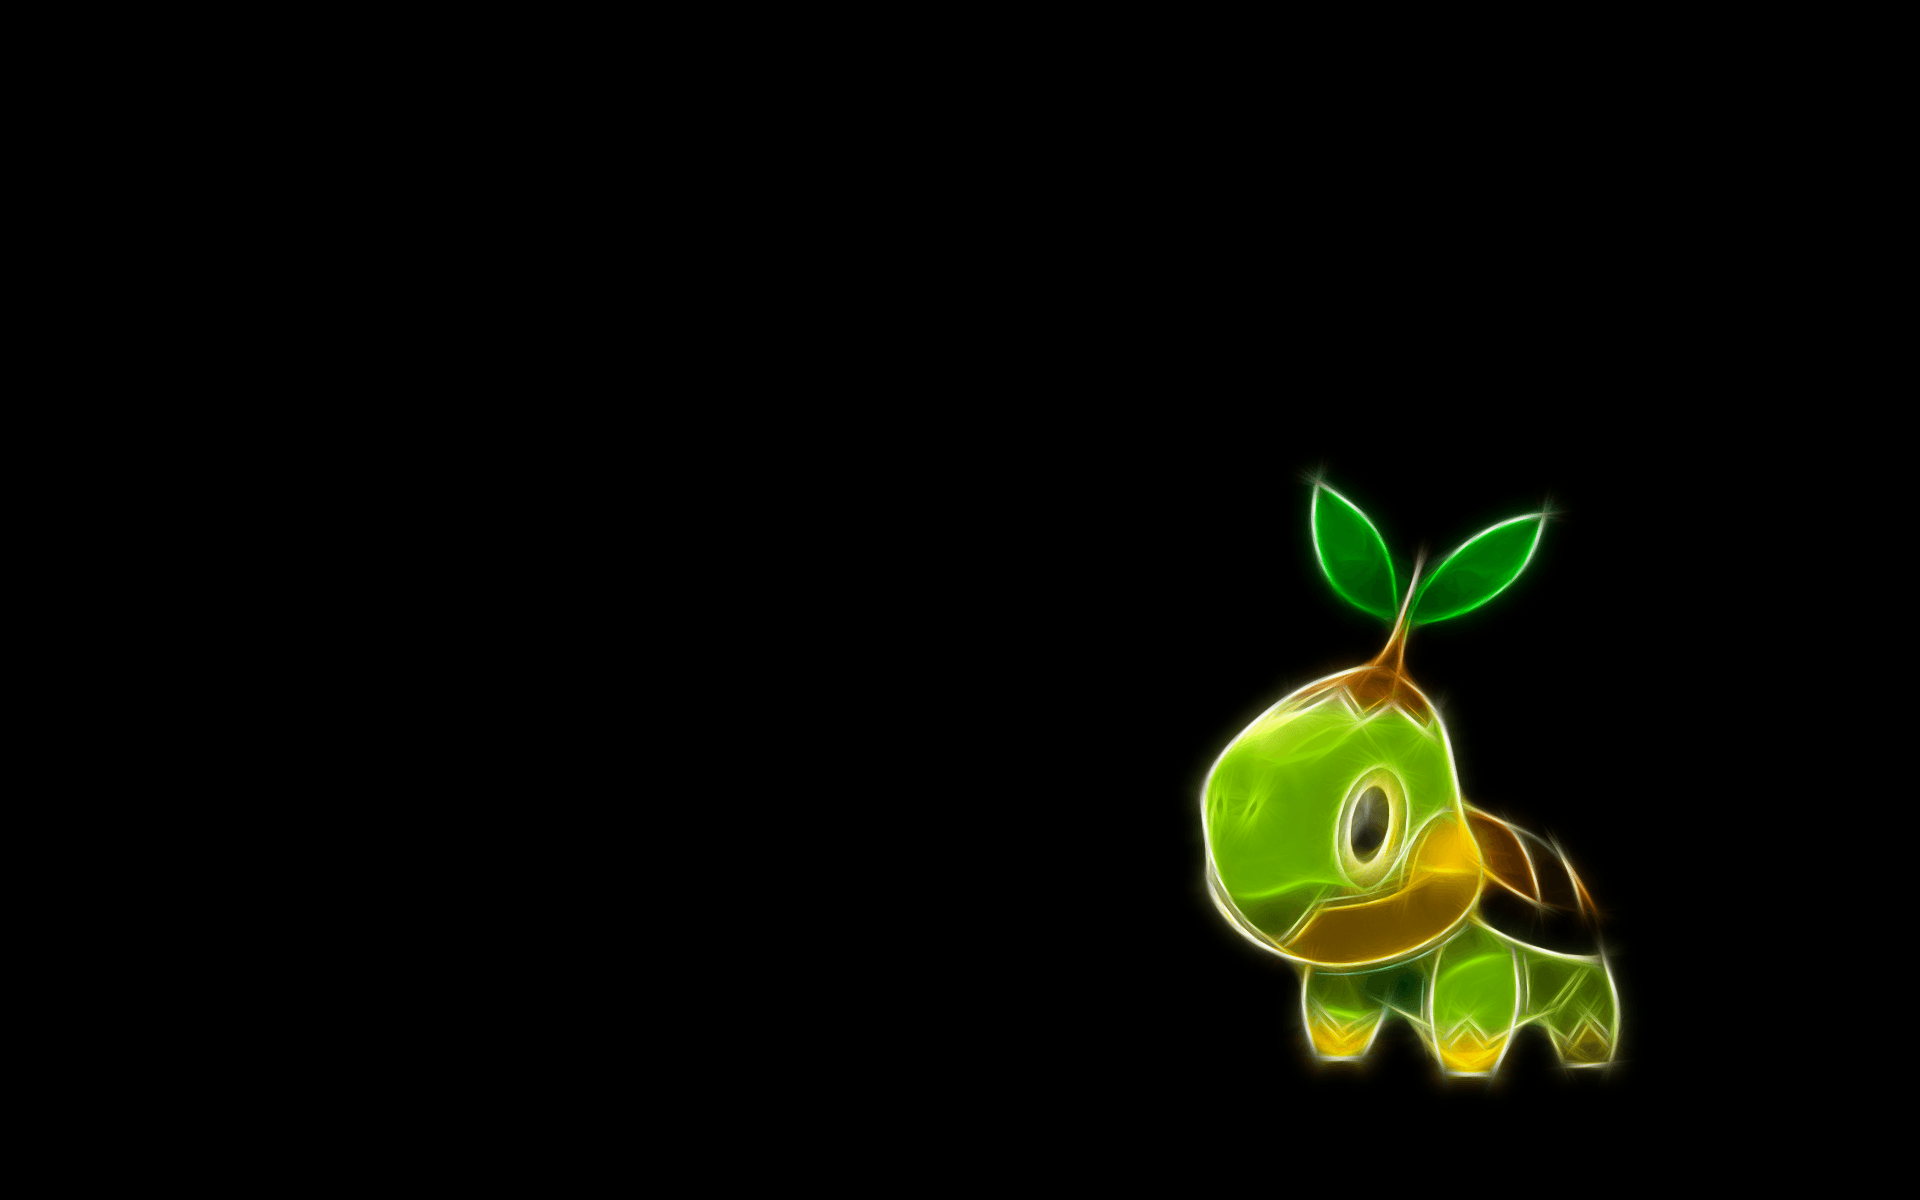 Turtwig Wallpaper | HD Wallpapers | Pinterest | Hd wallpaper and ...